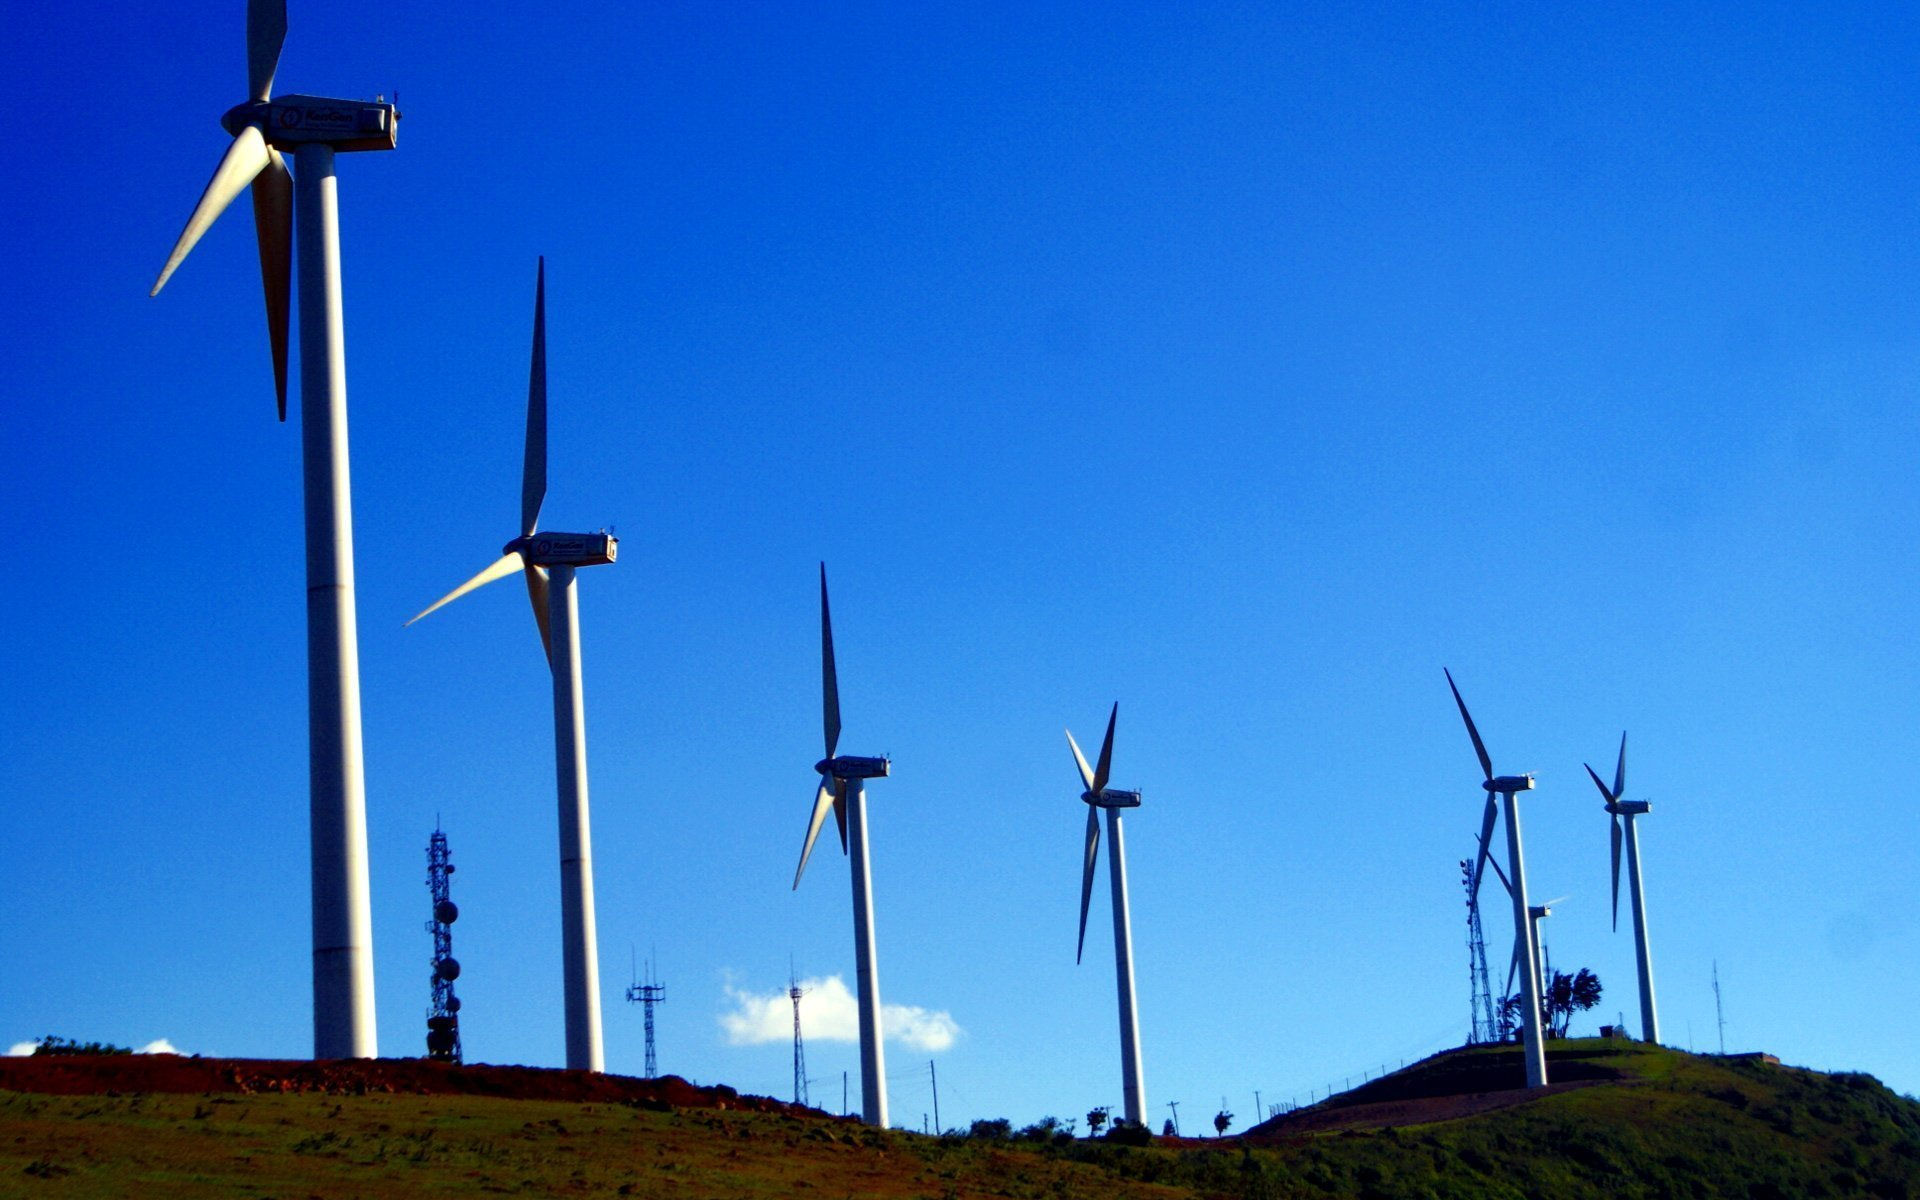 A section of the wind farm at Ngong Hills owned by KenGen.